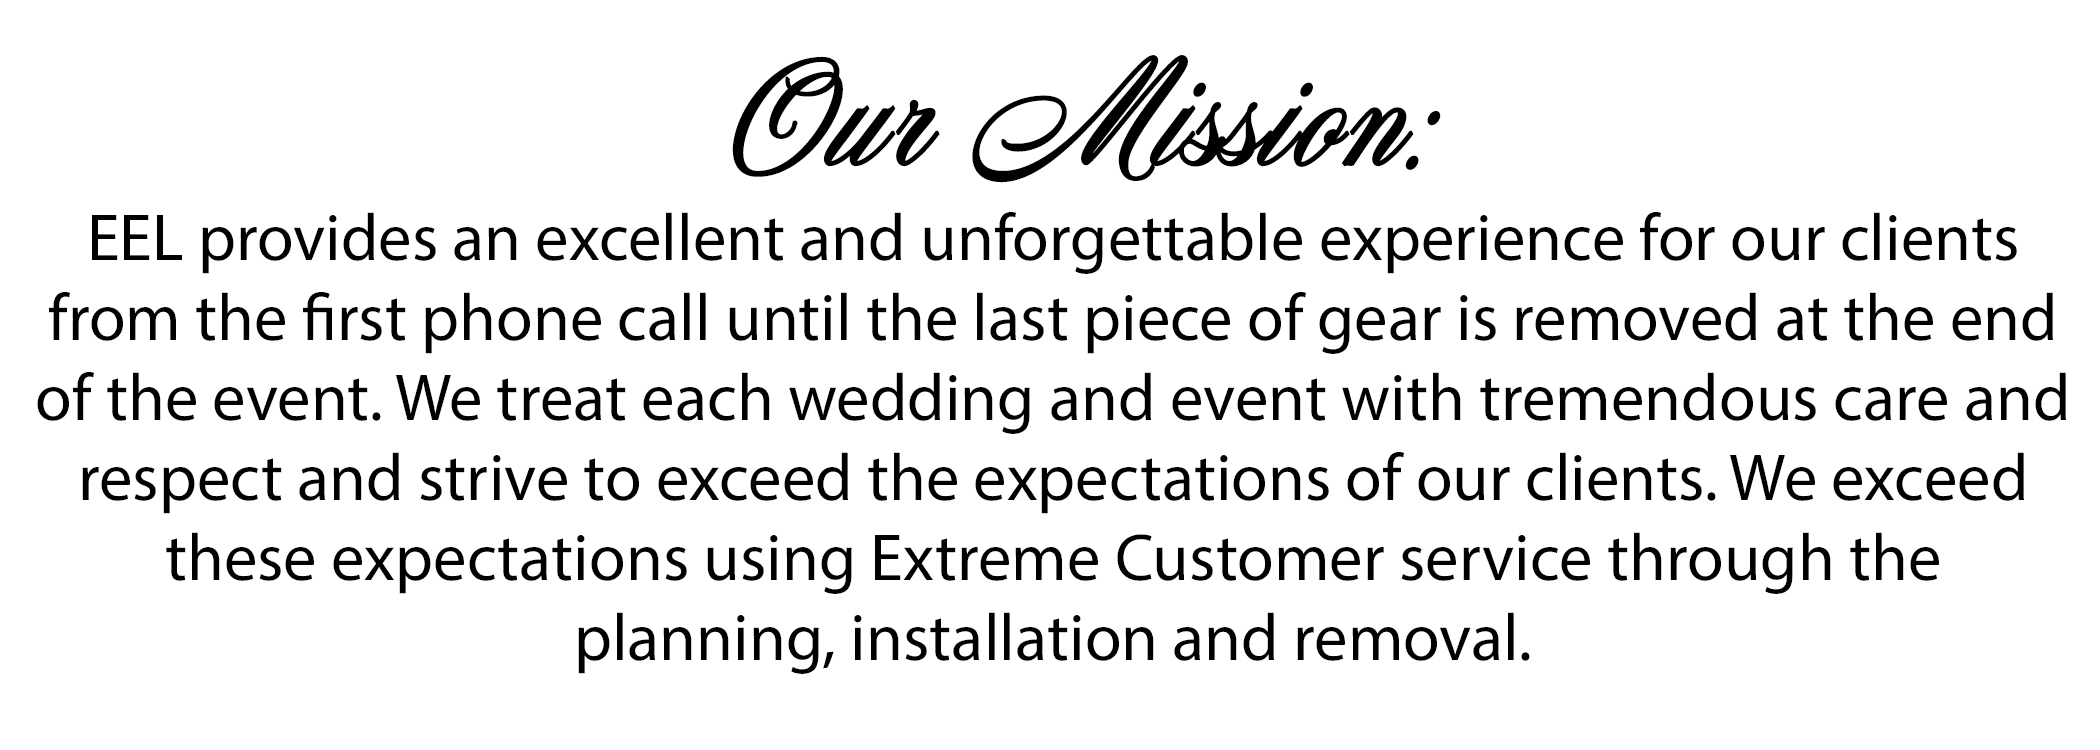 Elegant_Event_Lighting_Chicago_Wedding_Mission_Statement